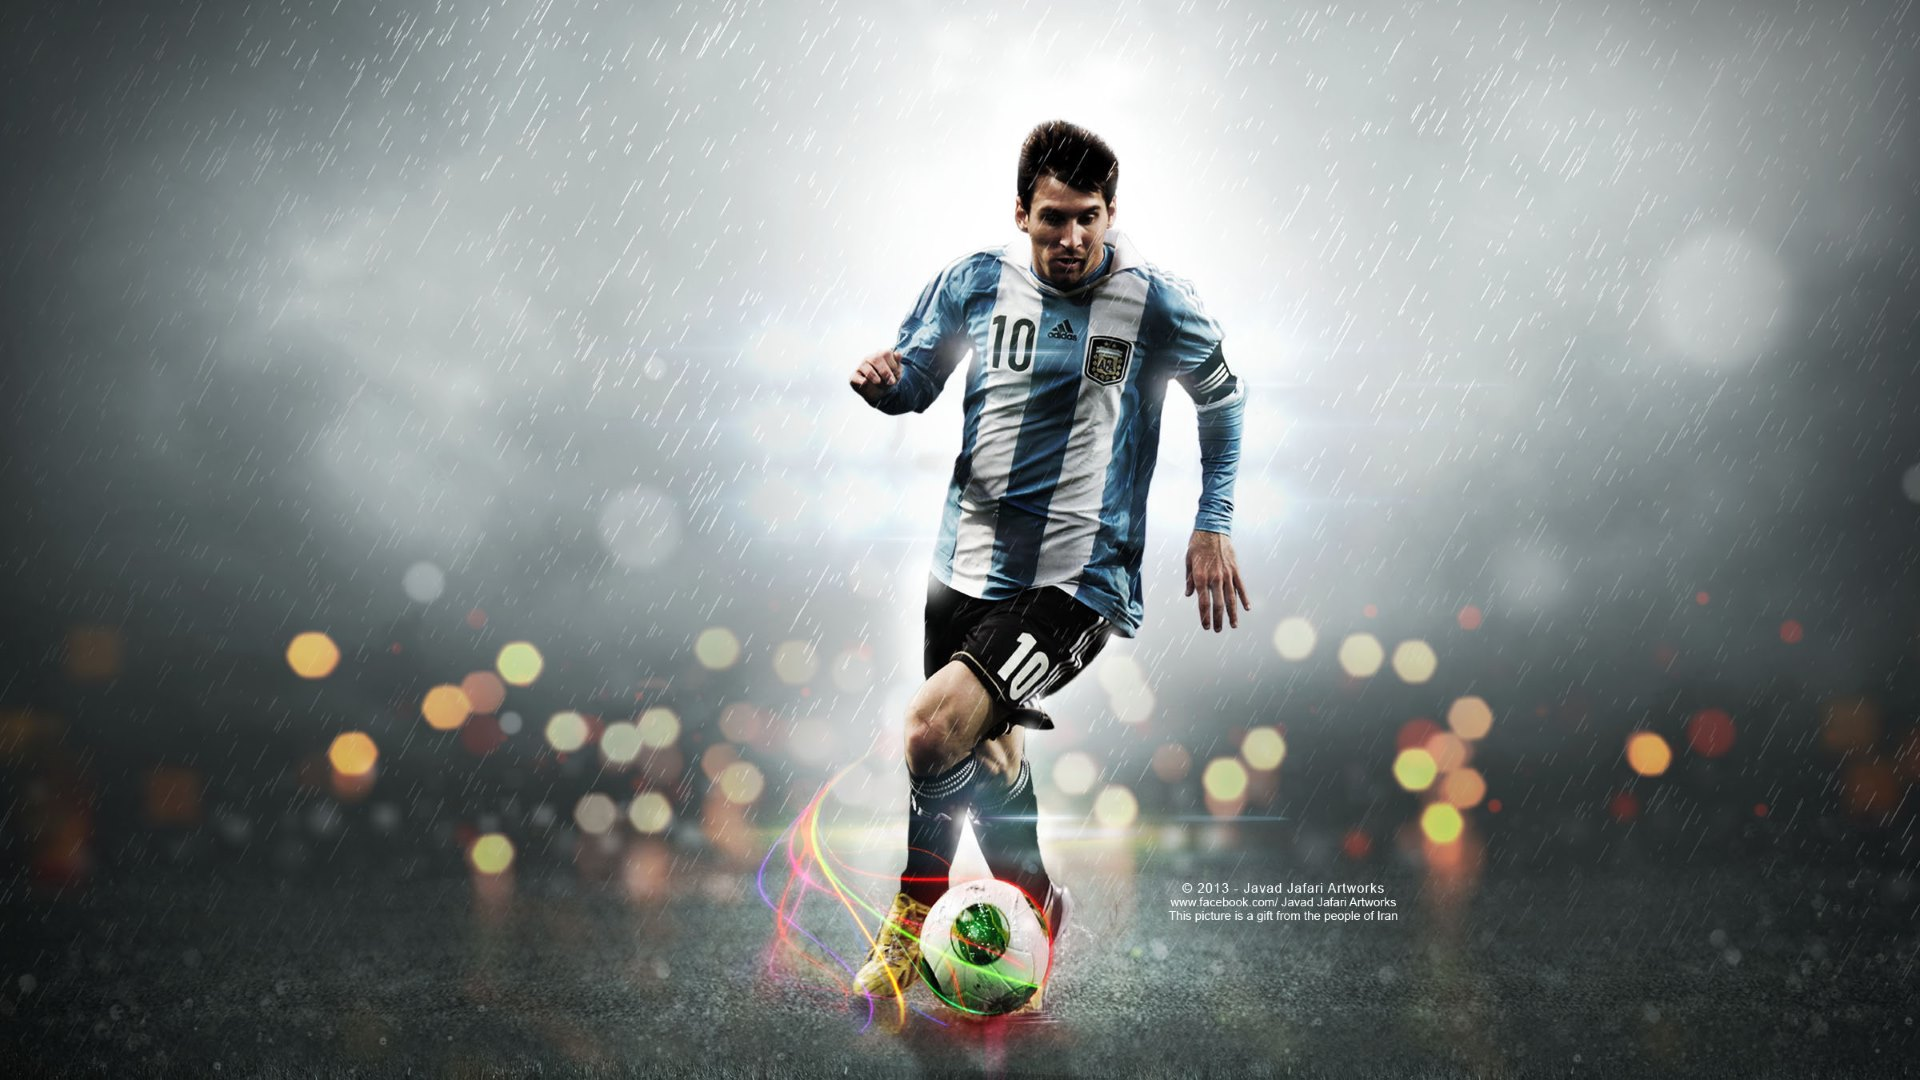 Latest 3d Wallpaper Designs The One And Only Leo Messi Wallpapers